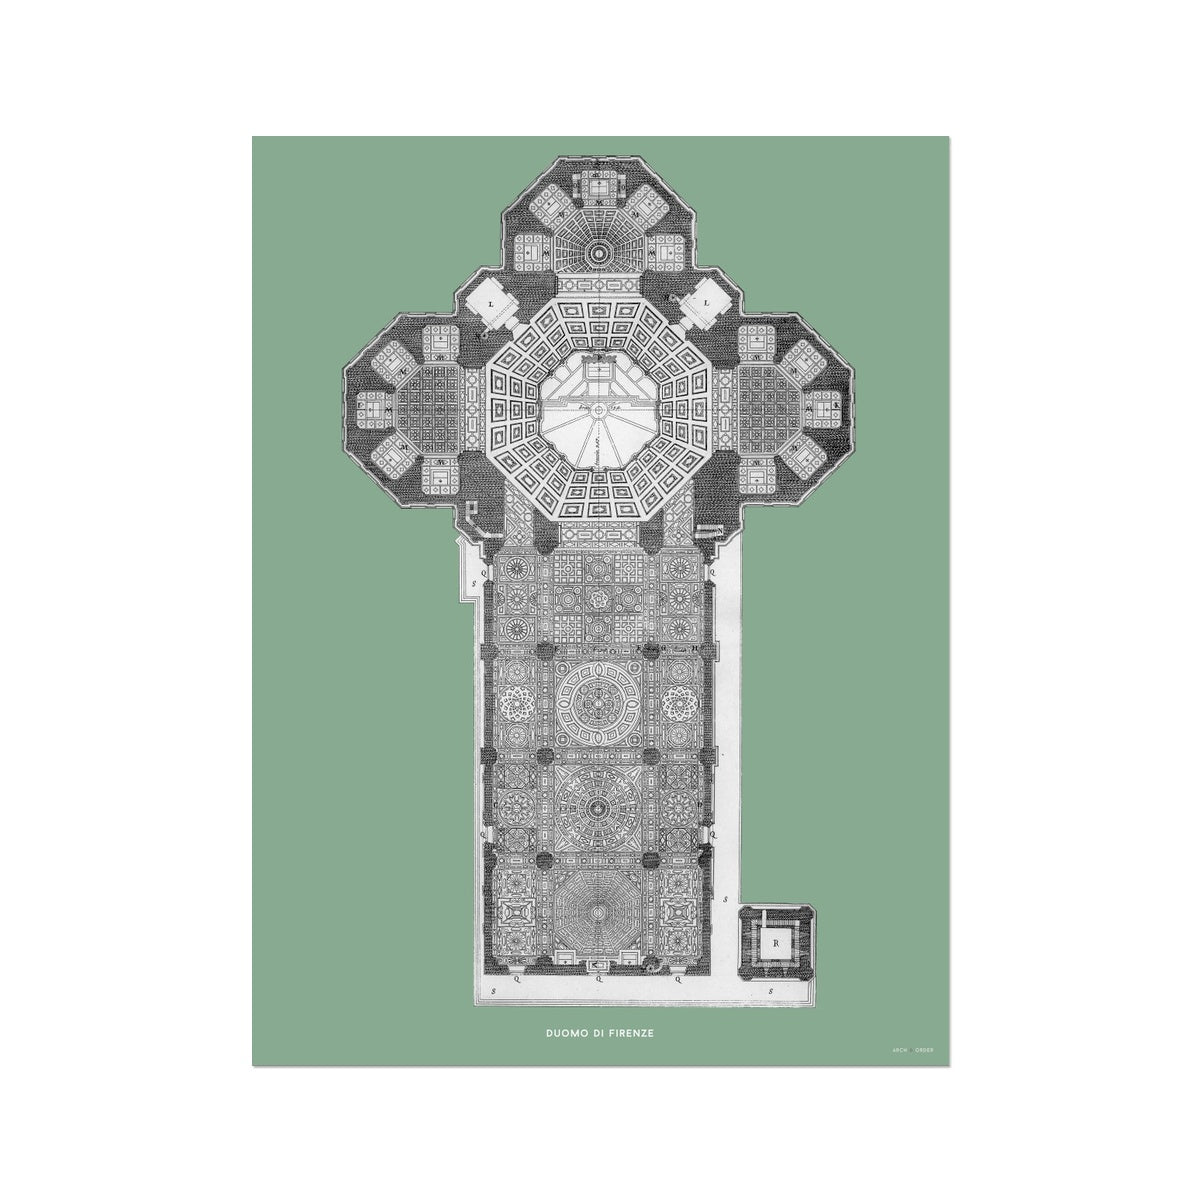 Duomo di Firenze - Floor Plan - Green -  Etching Paper Print